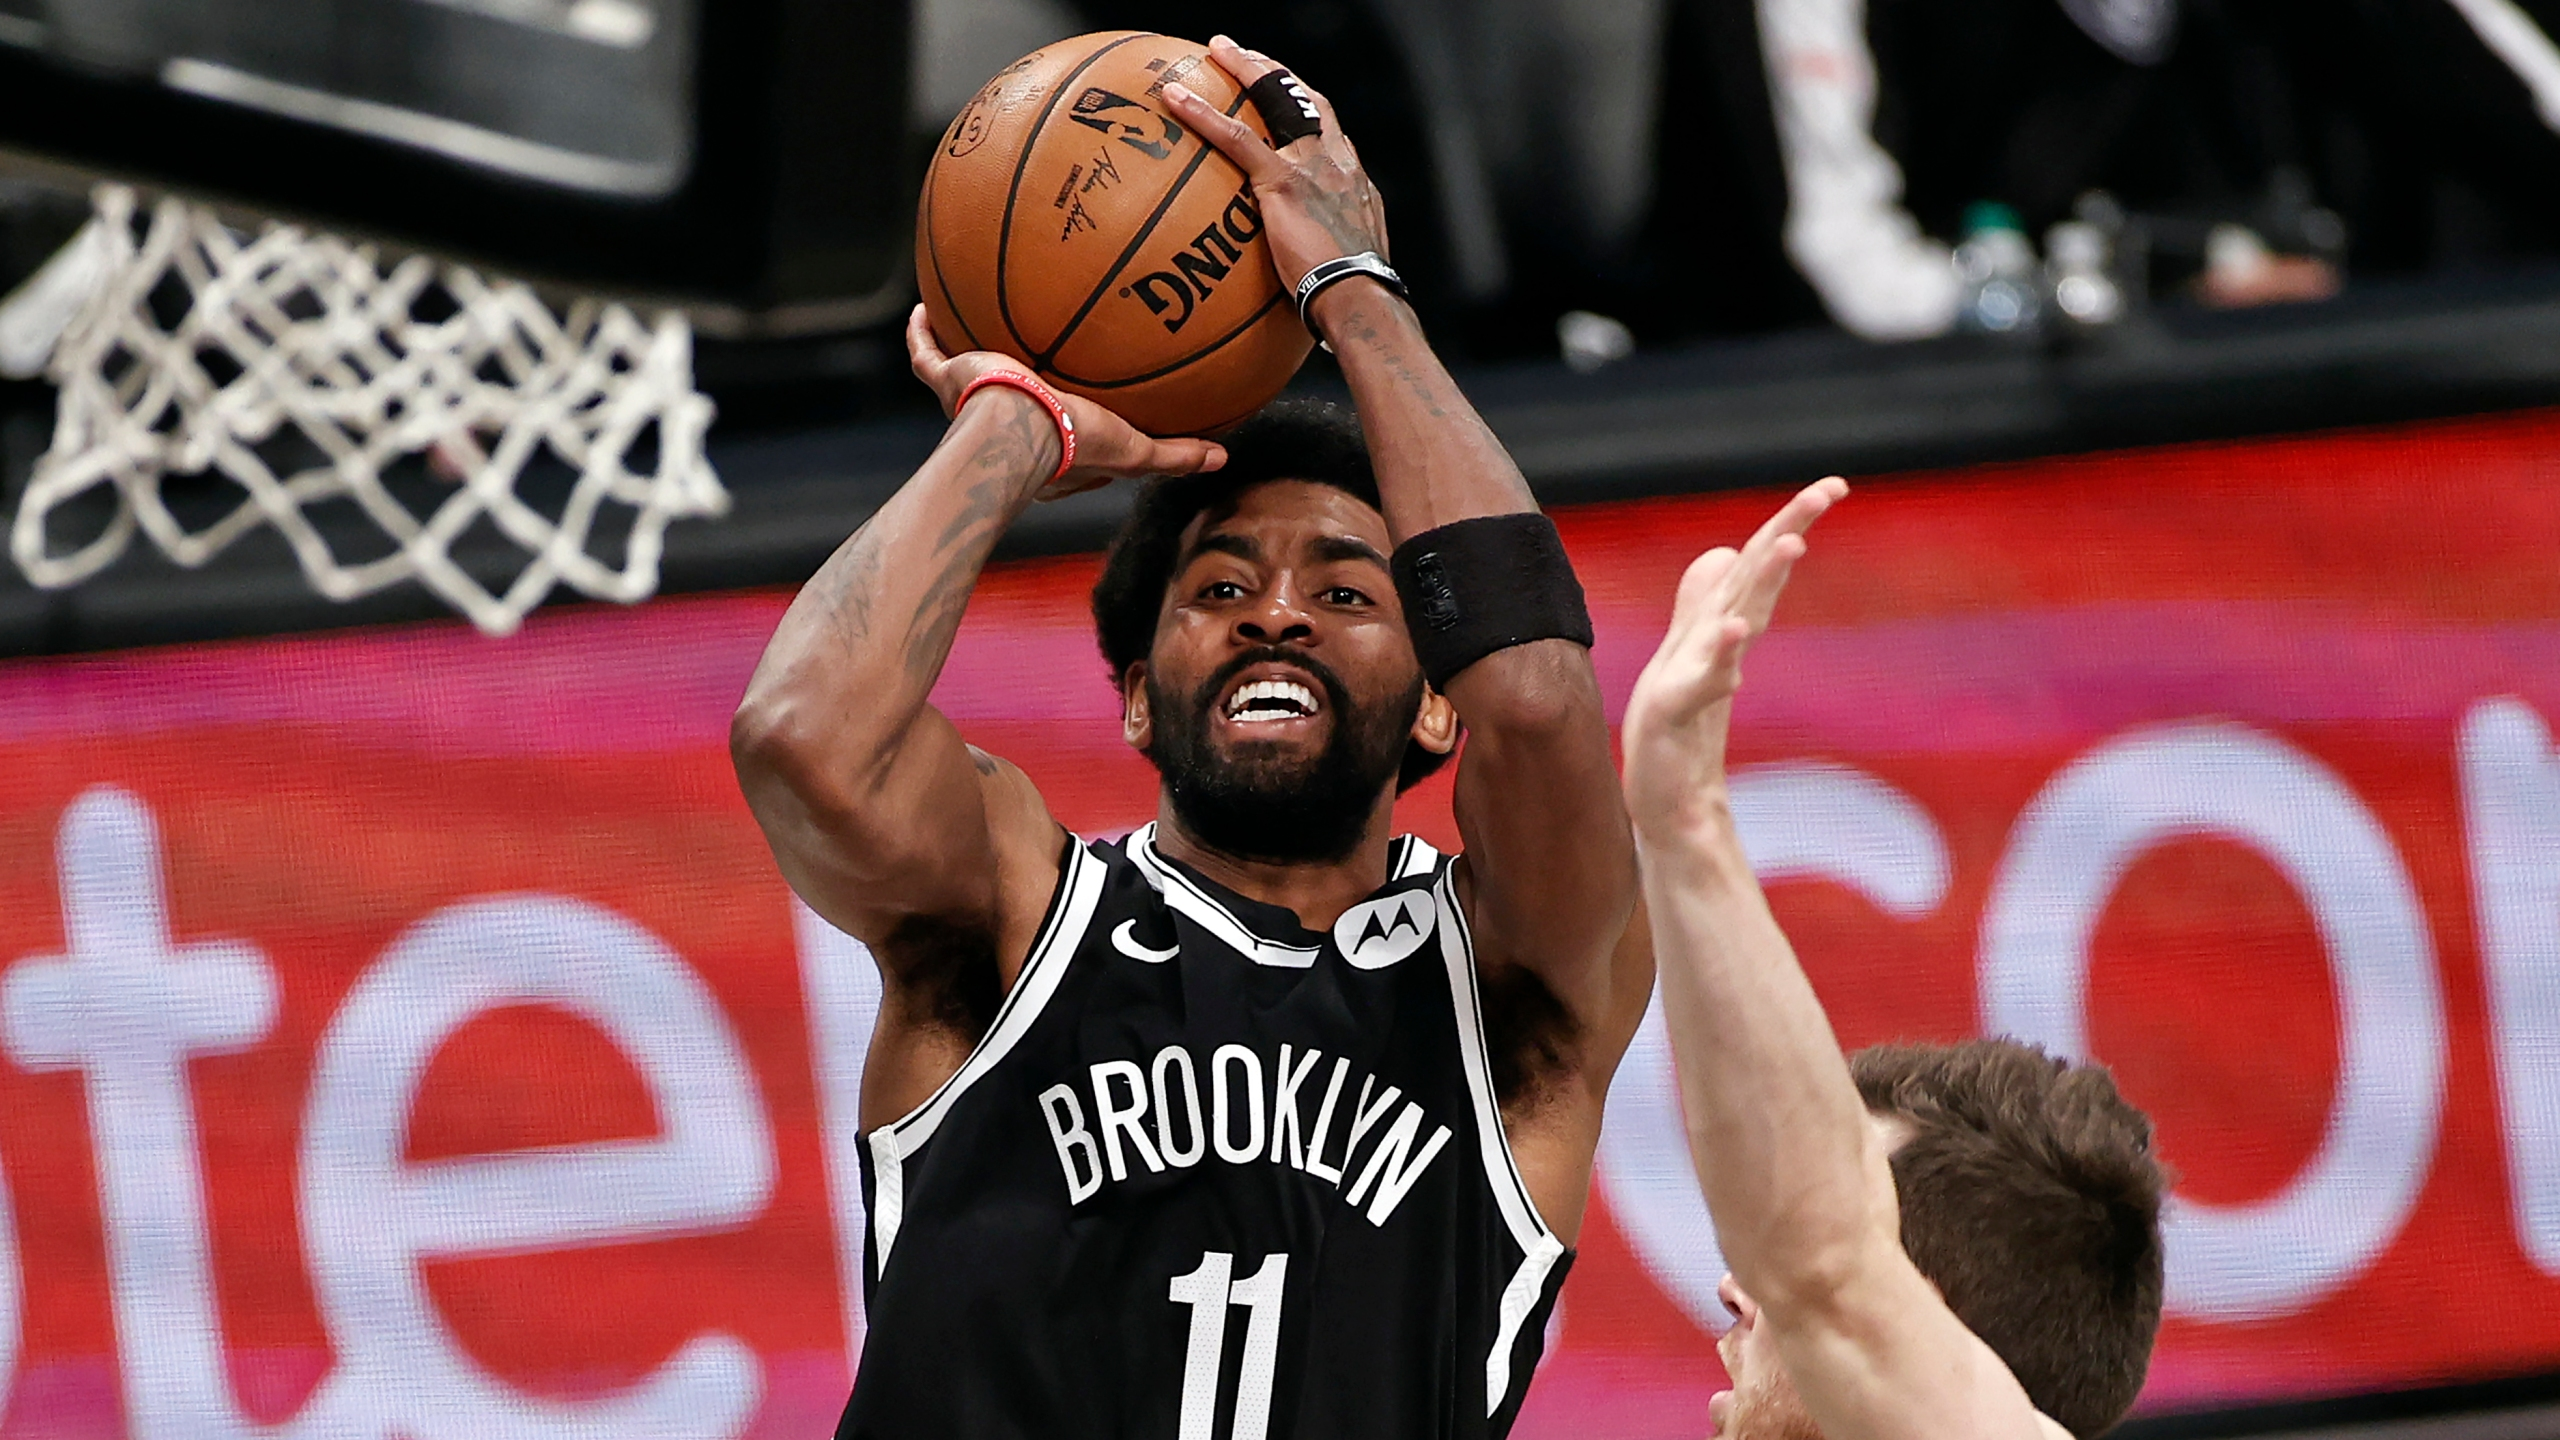 Brooklyn Nets guard Kyrie Irving (11) shoots against the Milwaukee Bucks during the second half of Game 1 of an NBA basketball second-round playoff series in New York, in this June 5, 2021, file photo. Players like Kyrie Irving, who has refused to say if he will be vaccinated against COVID-19, will be subject to testing on all NBA practice, travel and game days this season. (AP Photo/Adam Hunger, File)